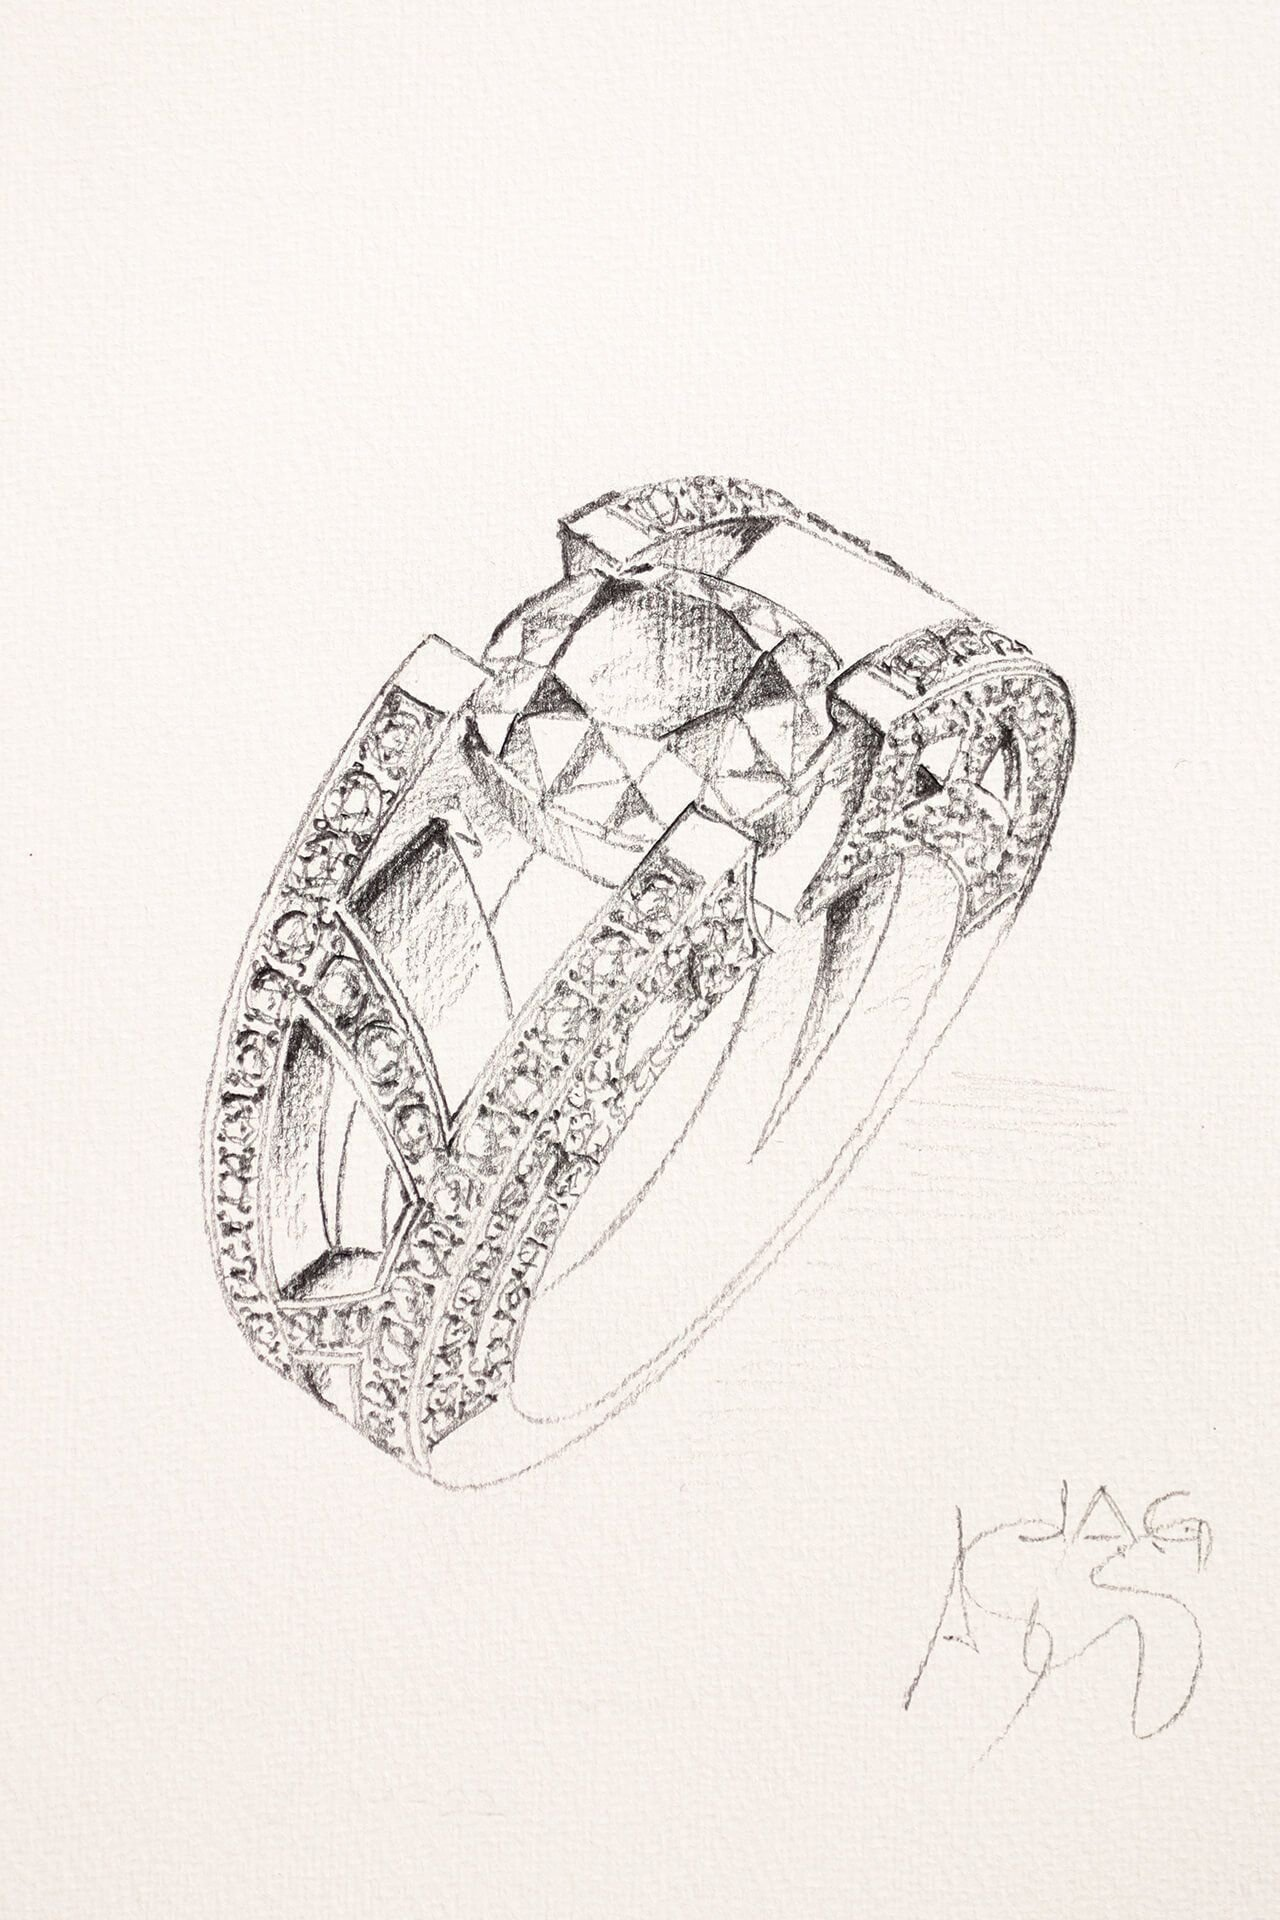 Drawing inspiration from the Eiffel Tower for the curves of a ring